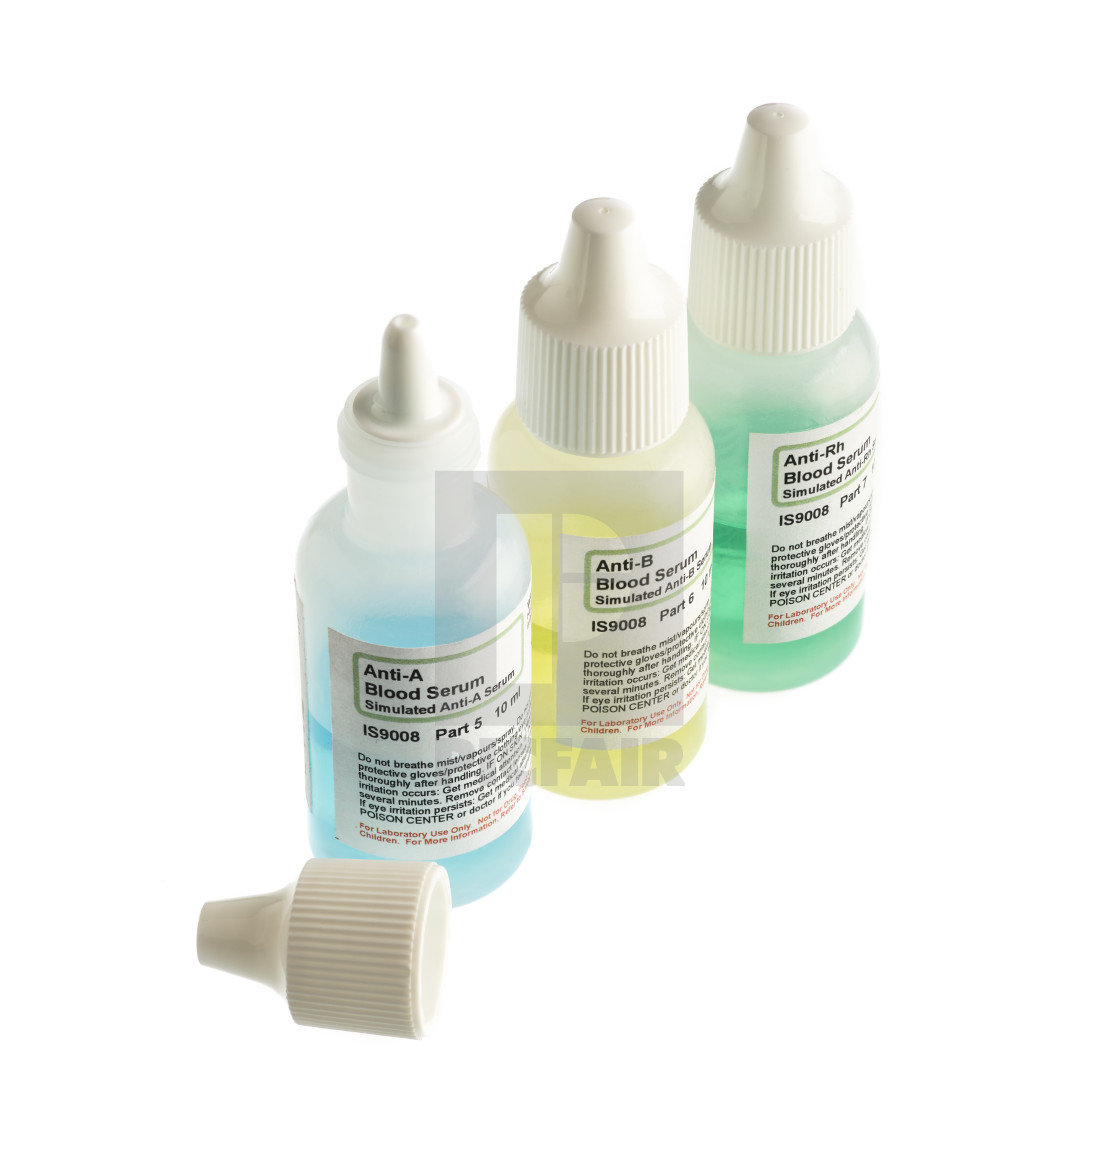 Blood serum samples in plastic bottles - License, download